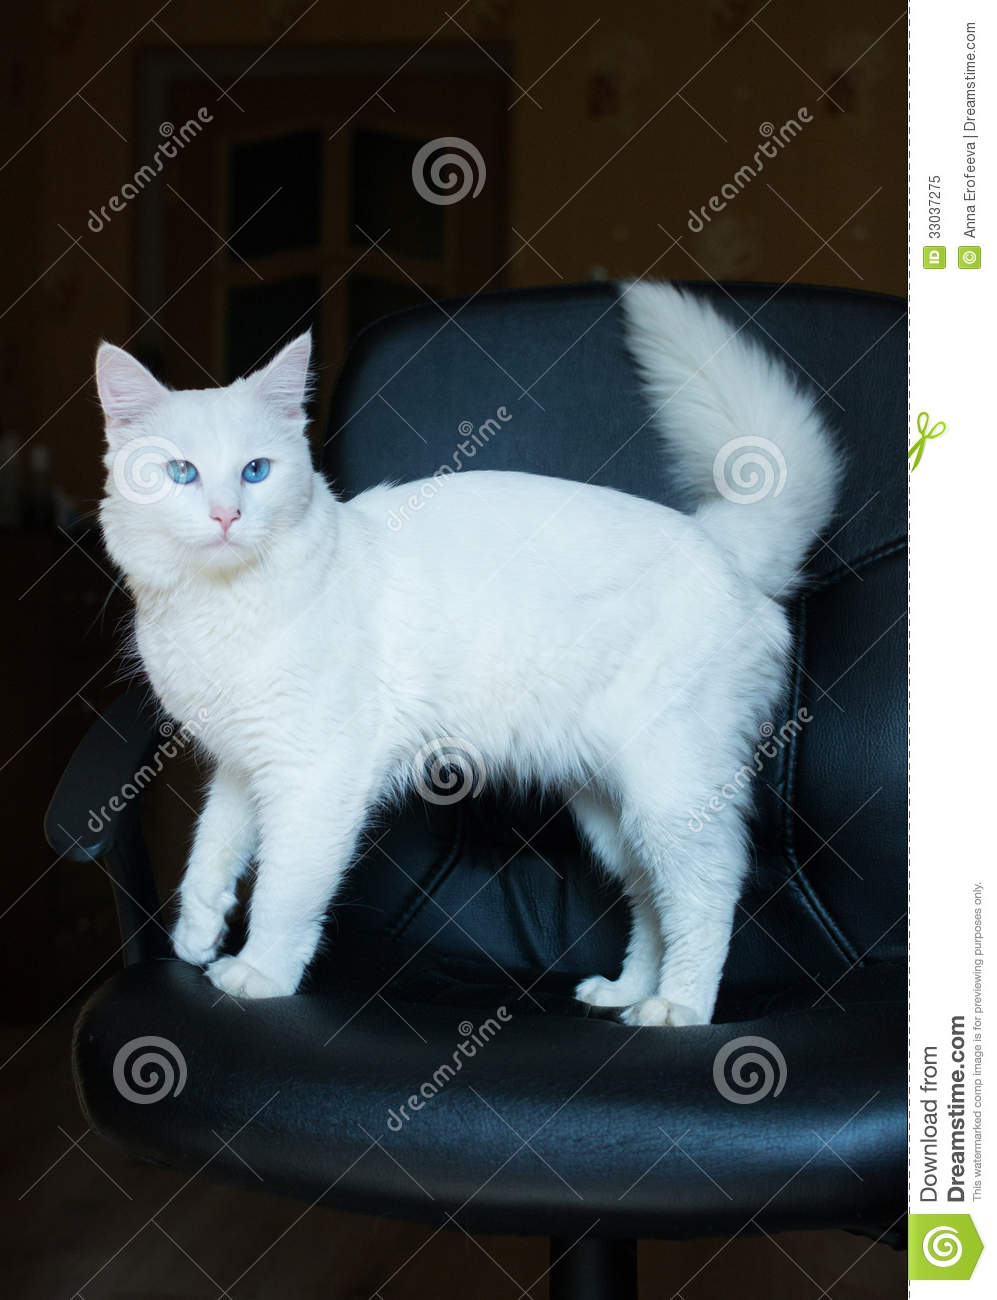 White Cat With Blue Eyes And Bushy Tail Royalty Free Stock